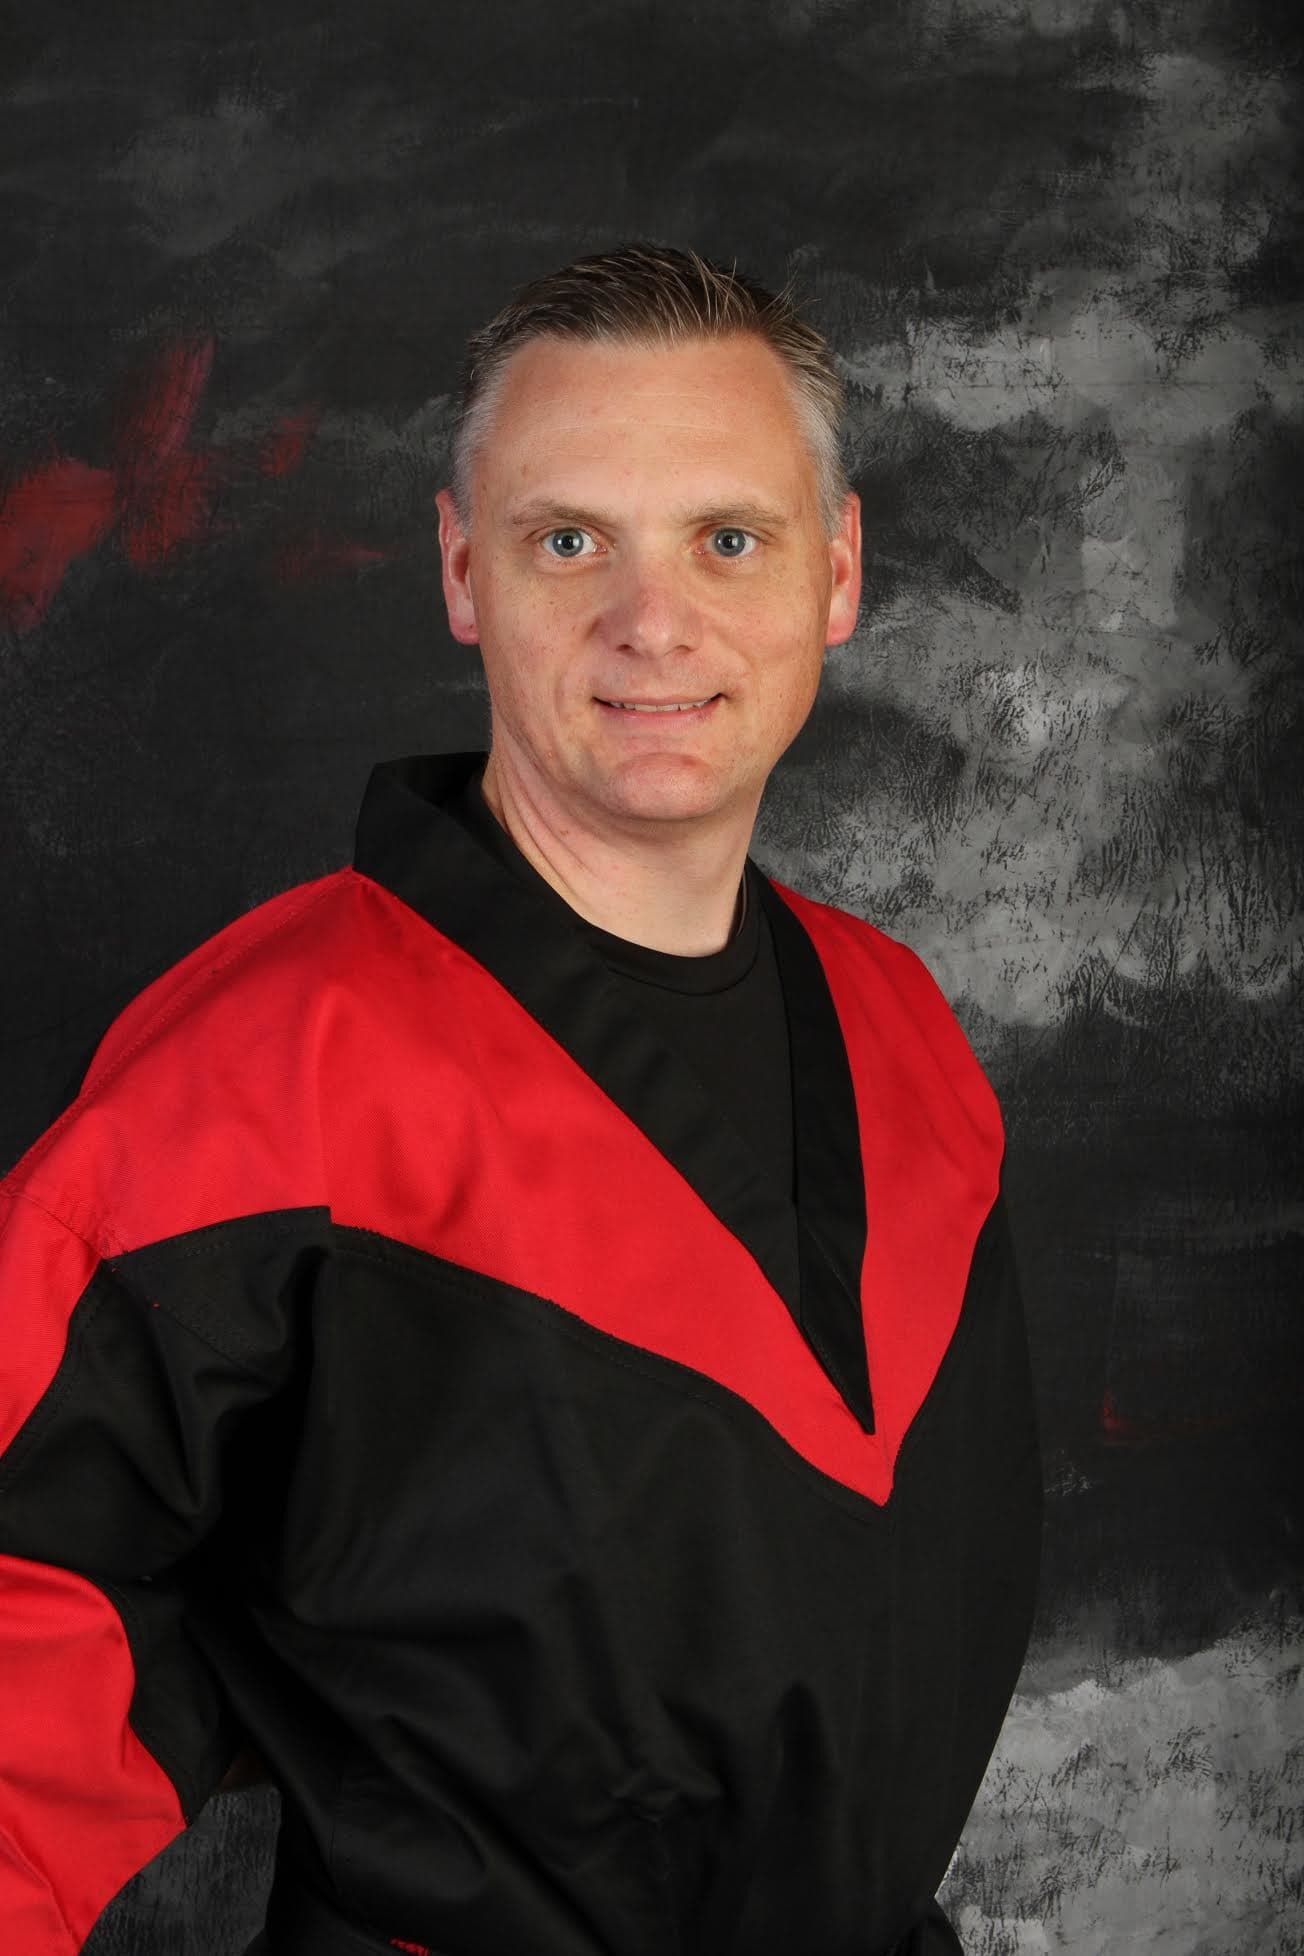 Mr Dan Madsen in Manlius - Impact Martial Arts & Fitness - Team Manlius